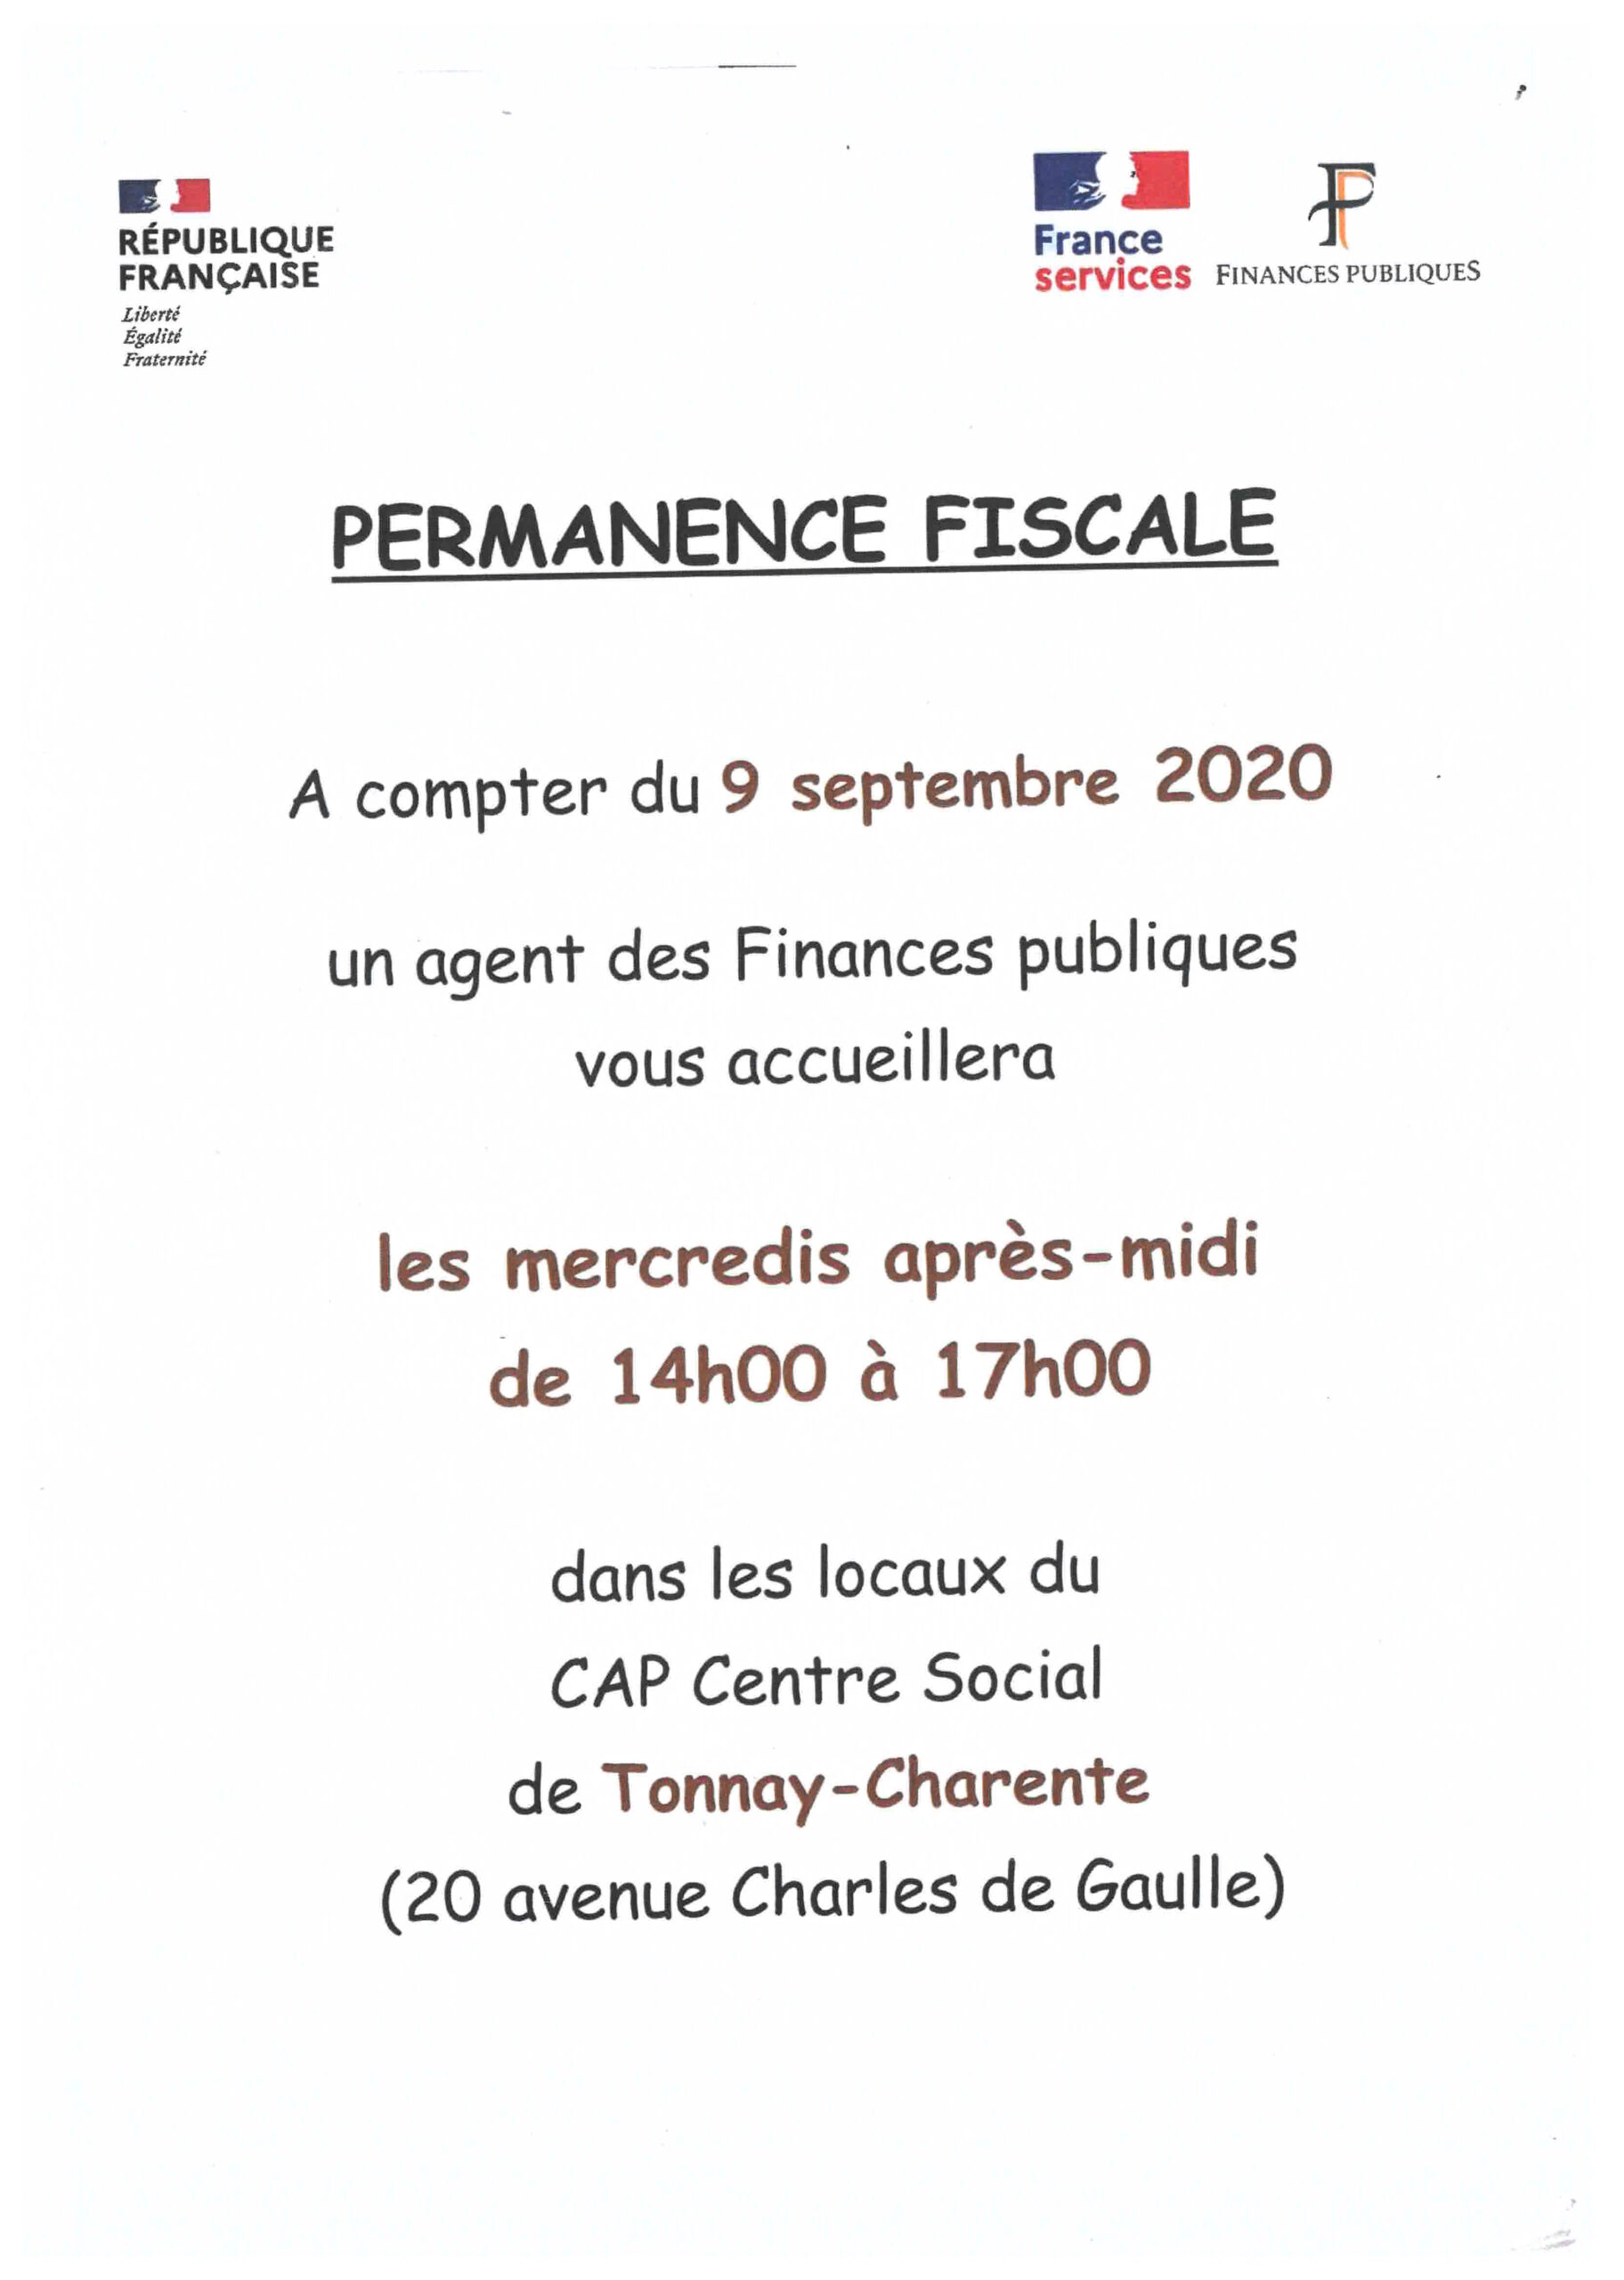 Permanence Fiscale Tonnay-Charente